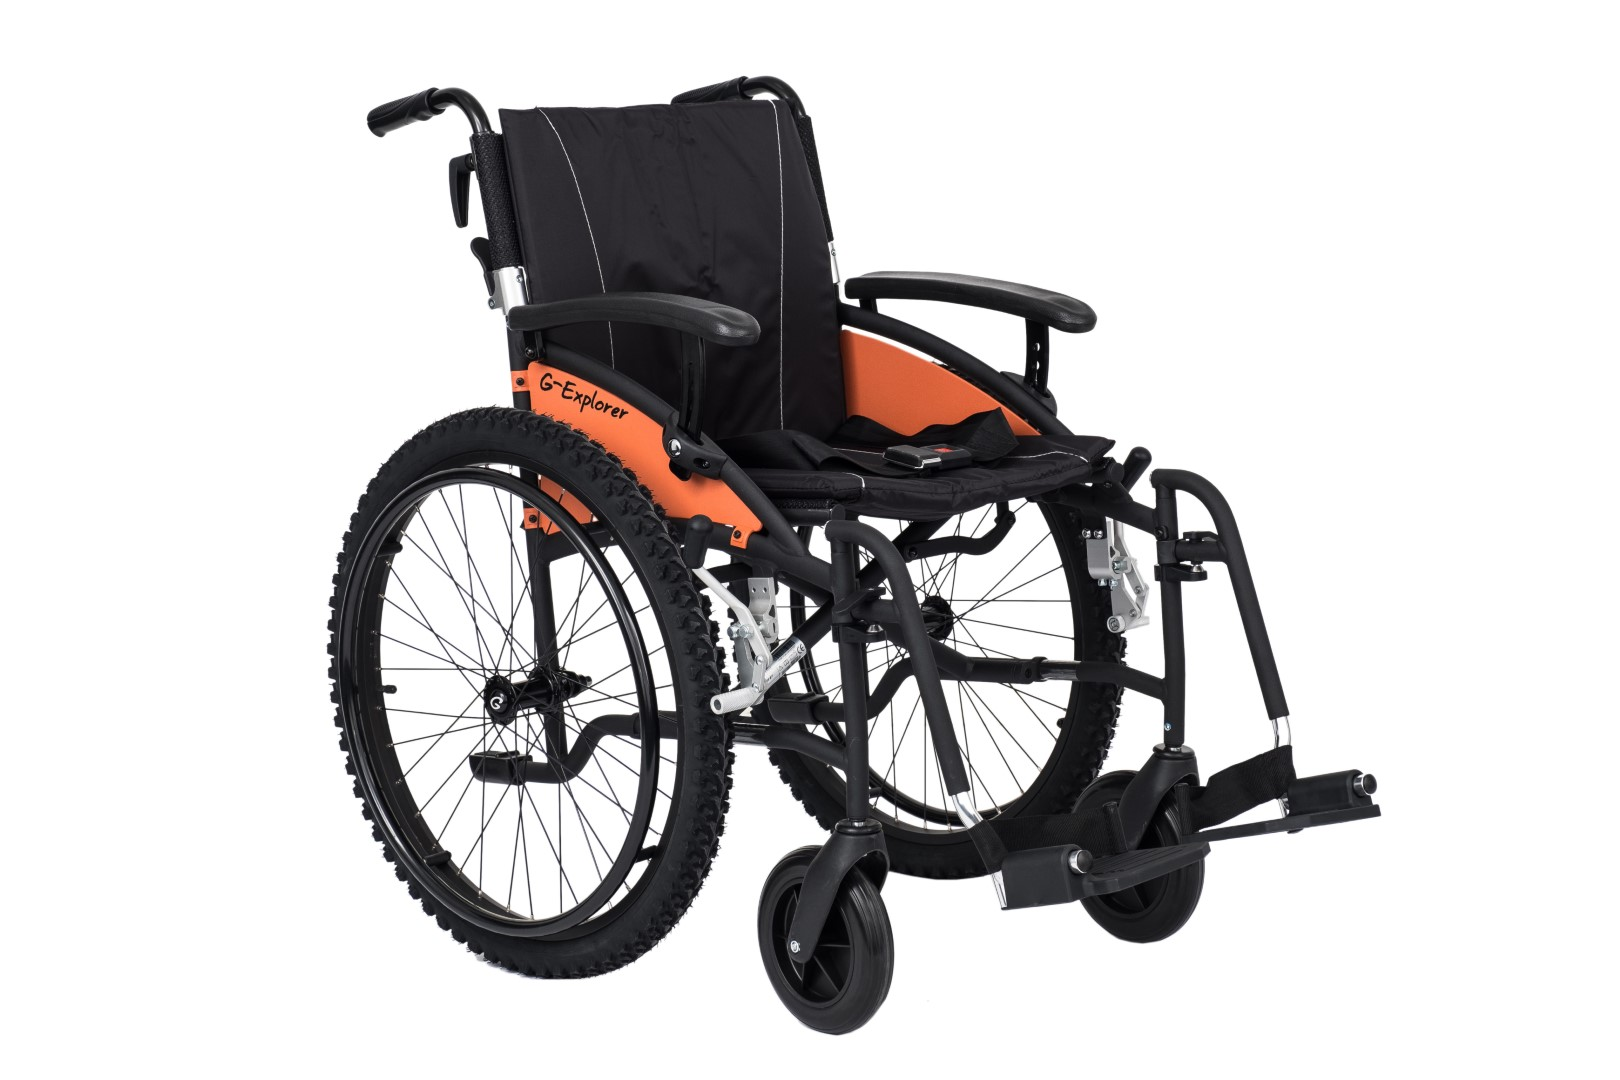 Amazing Excel G Explorer Self Propel All Terrain Wheelchair Black Frame 18 Inch Standard Seat Inzonedesignstudio Interior Chair Design Inzonedesignstudiocom